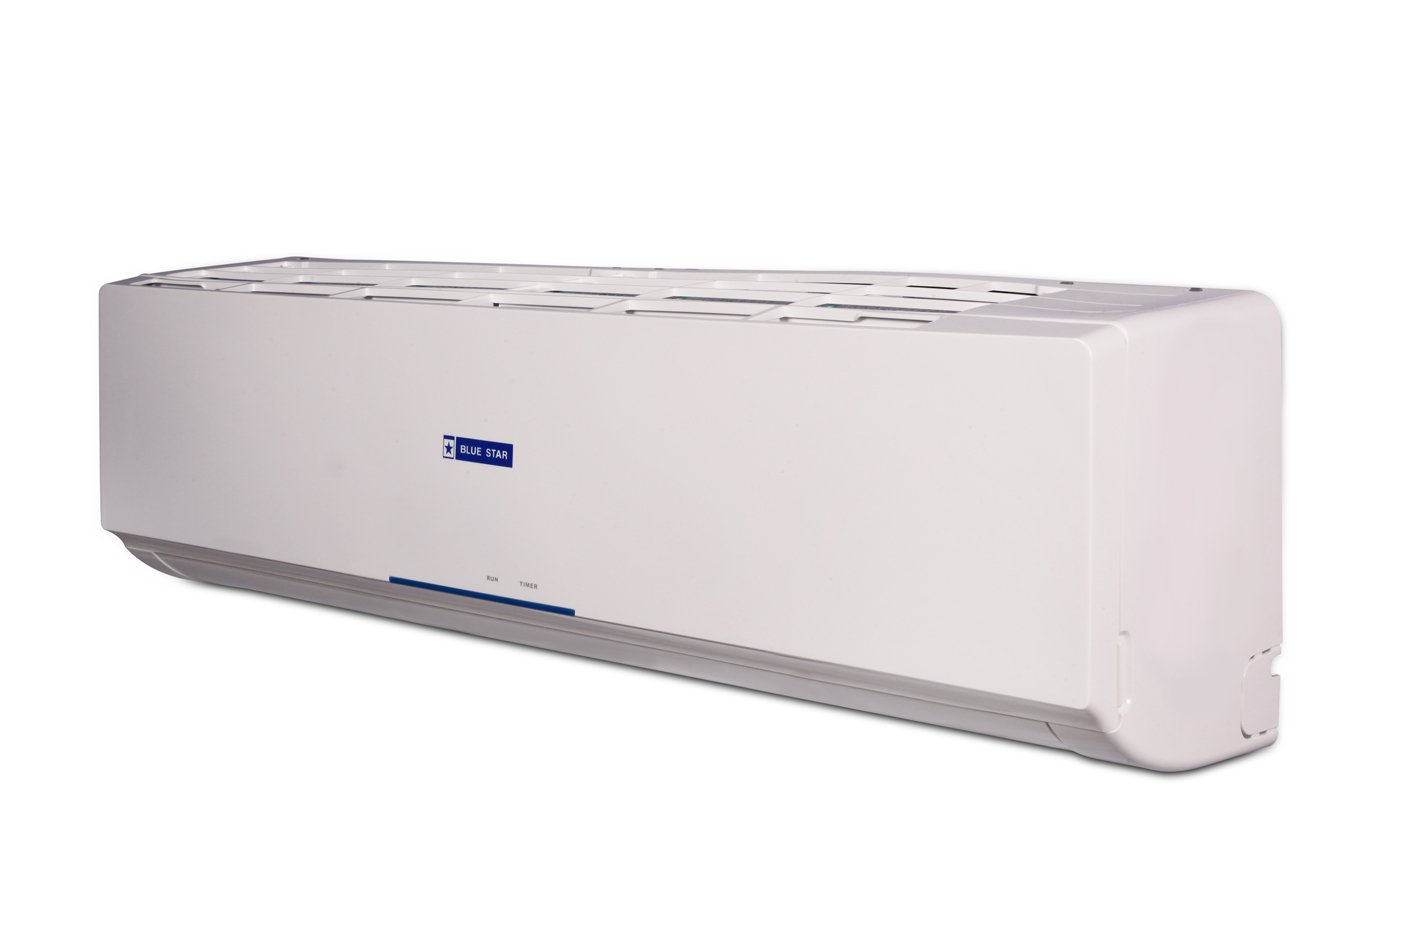 Top 5 Best AC under 30000 In India 2020 : Air Conditioner Below Rs 30000